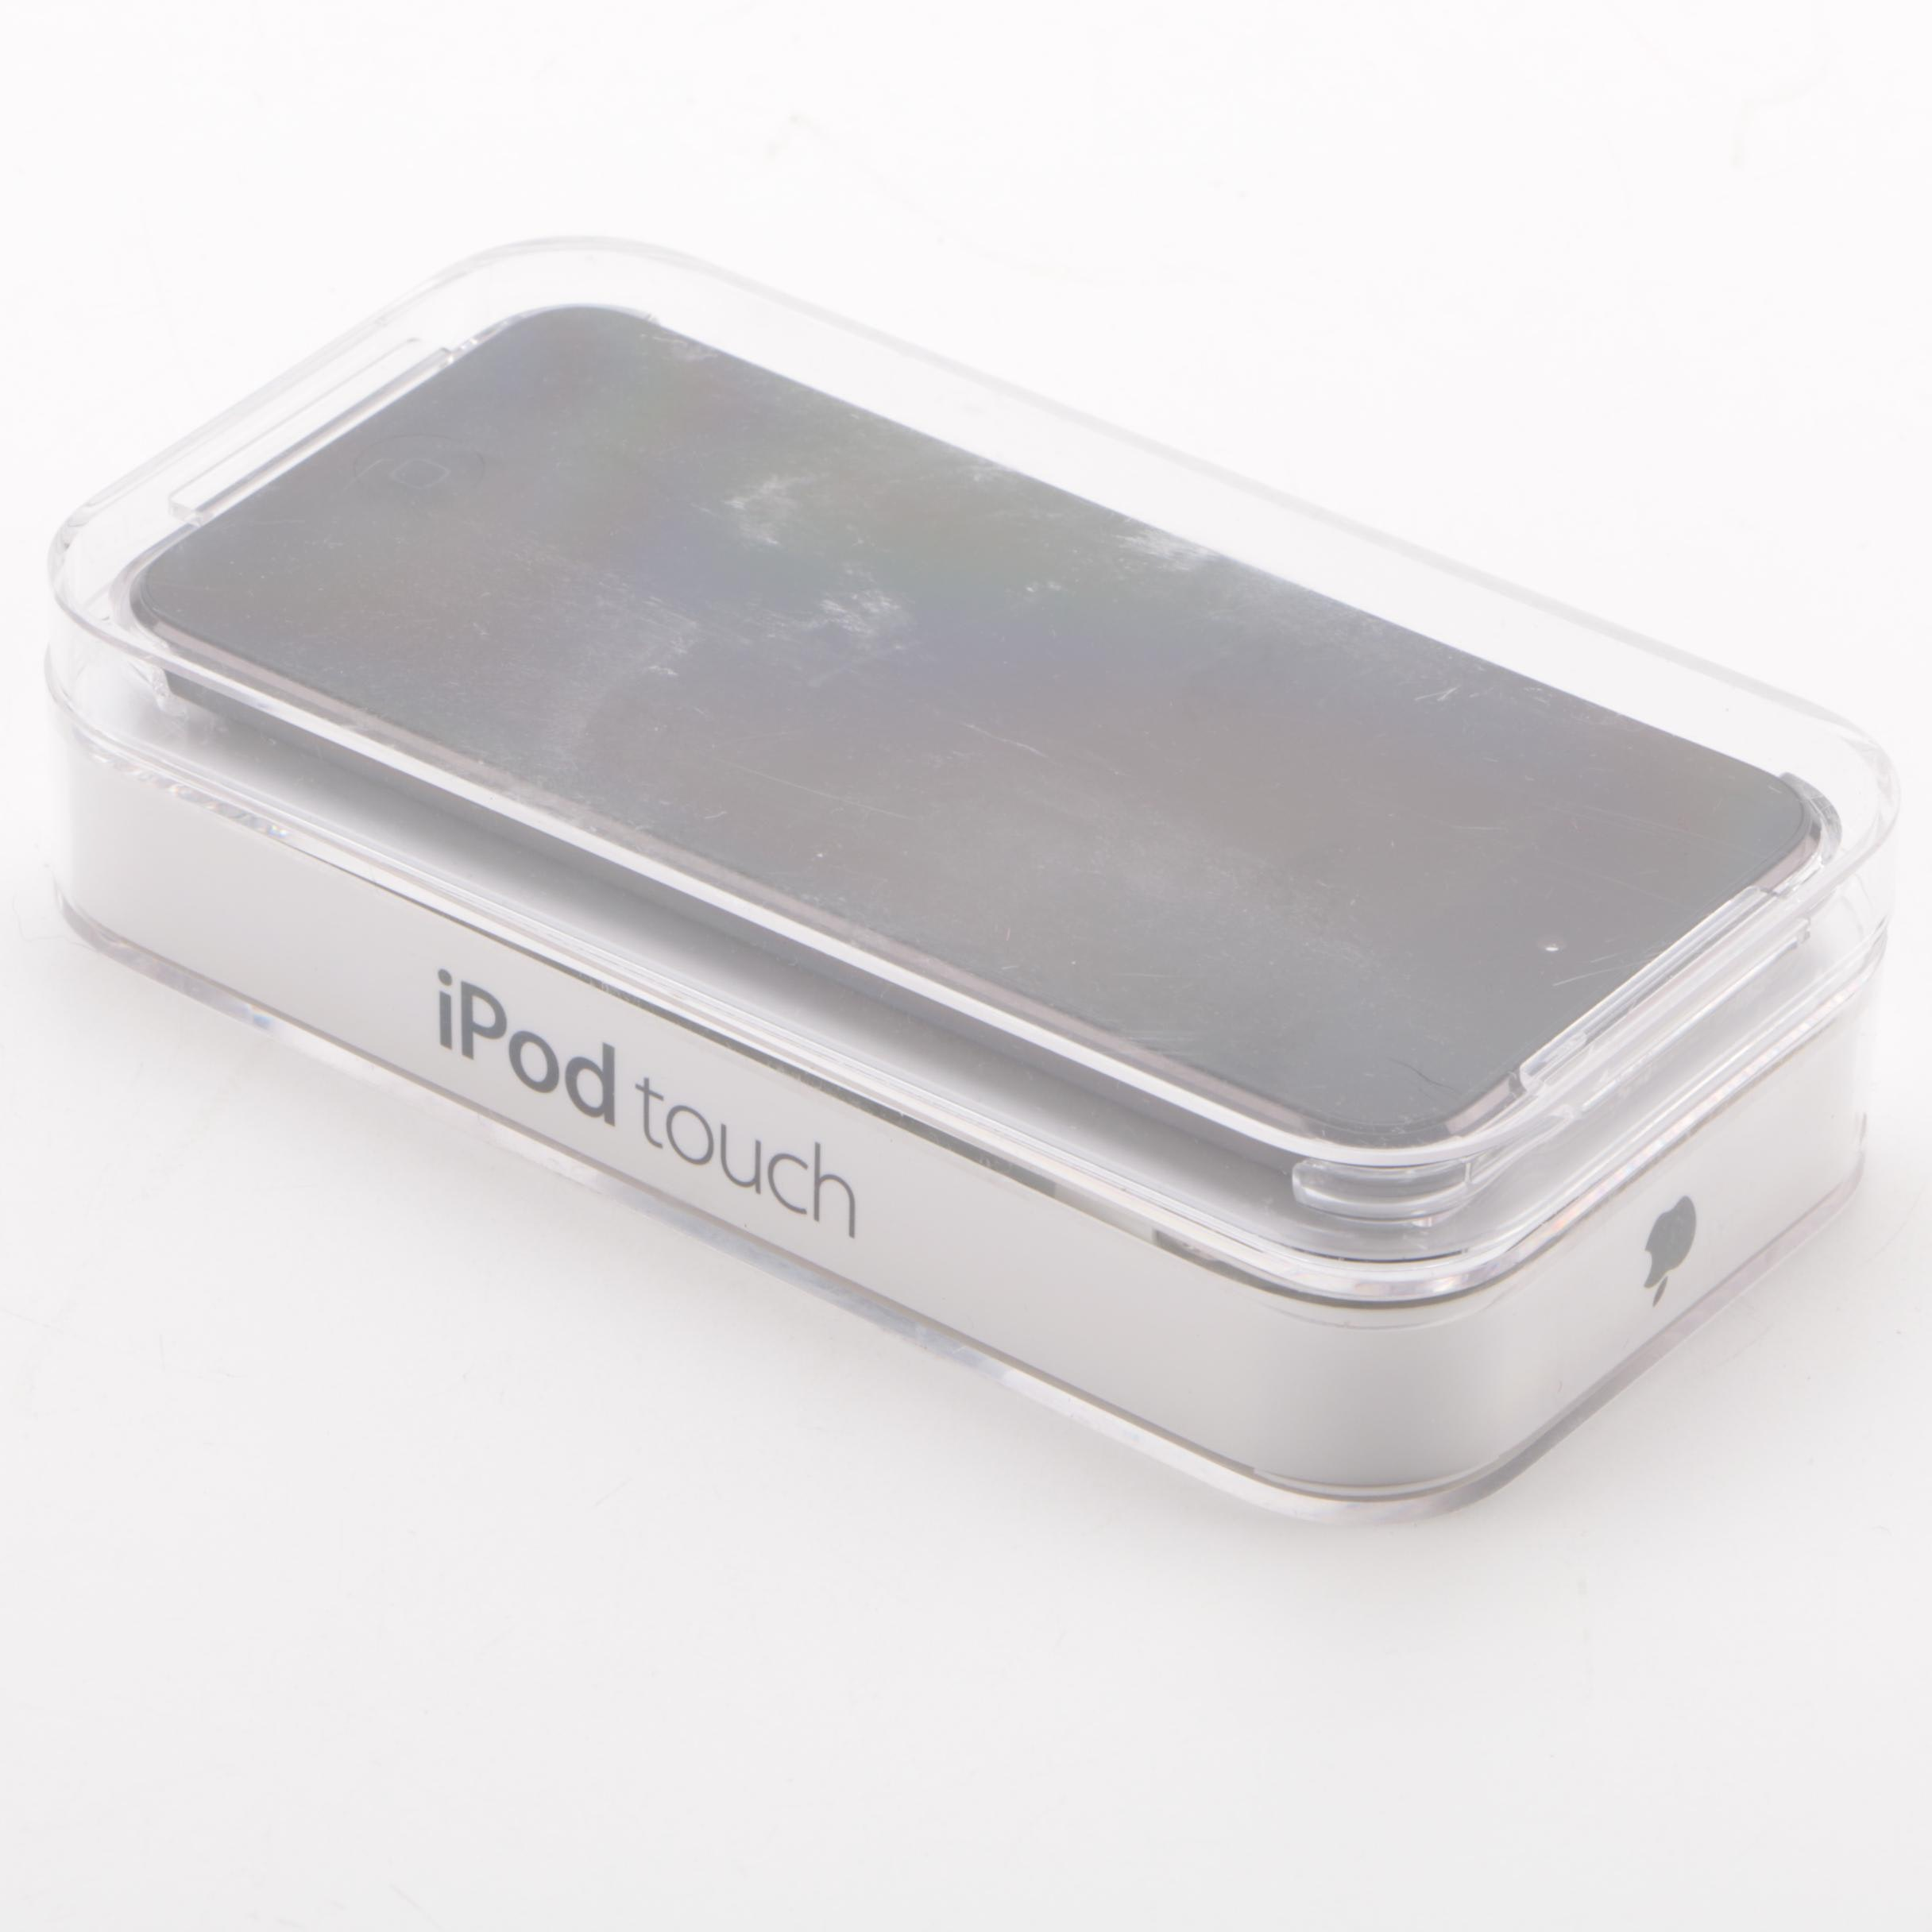 iPod Touch with Original Power Cord and Packaging